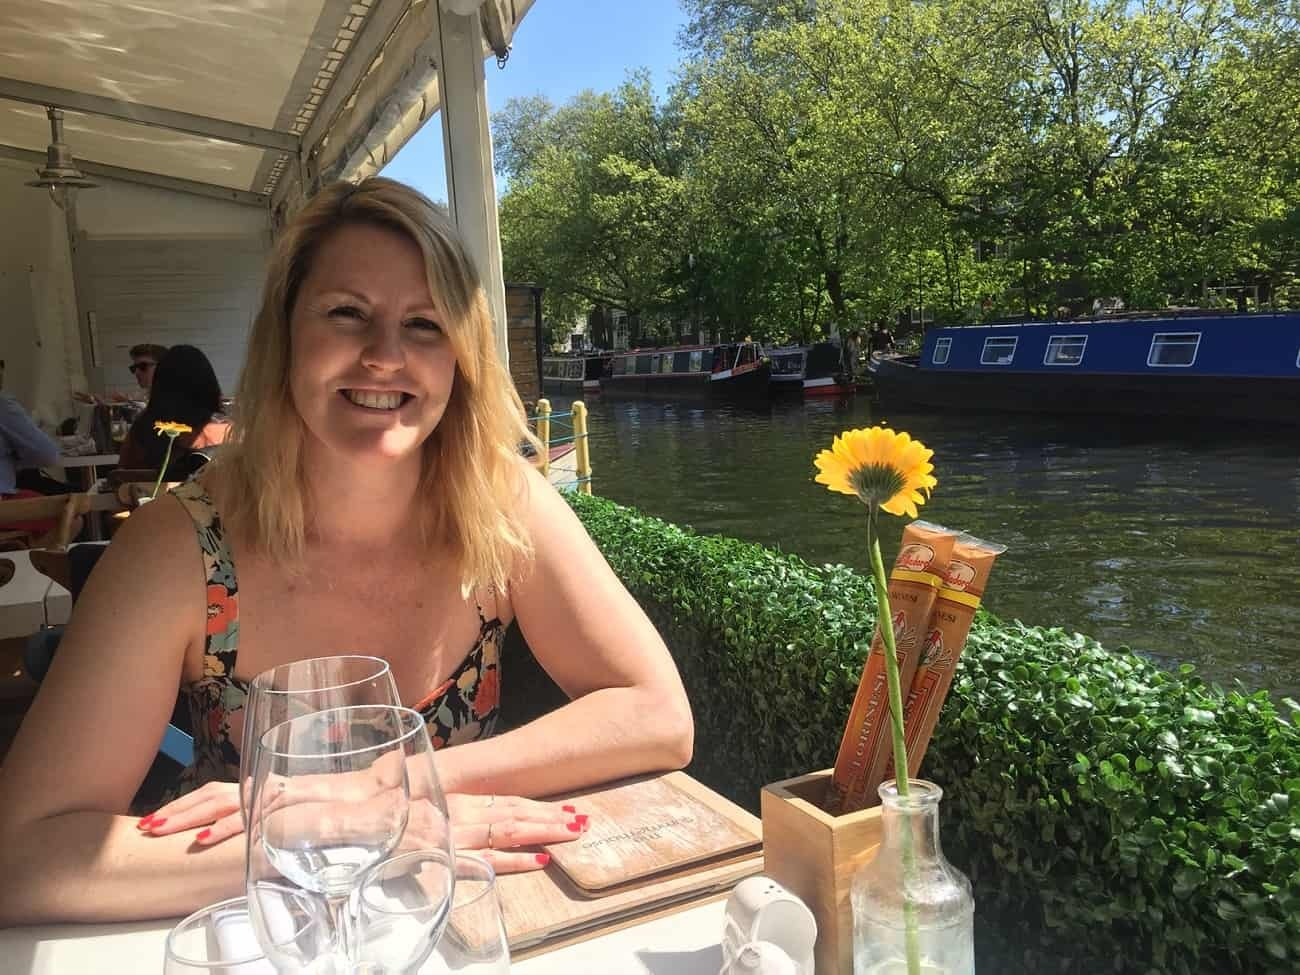 Dining canalside in the sun